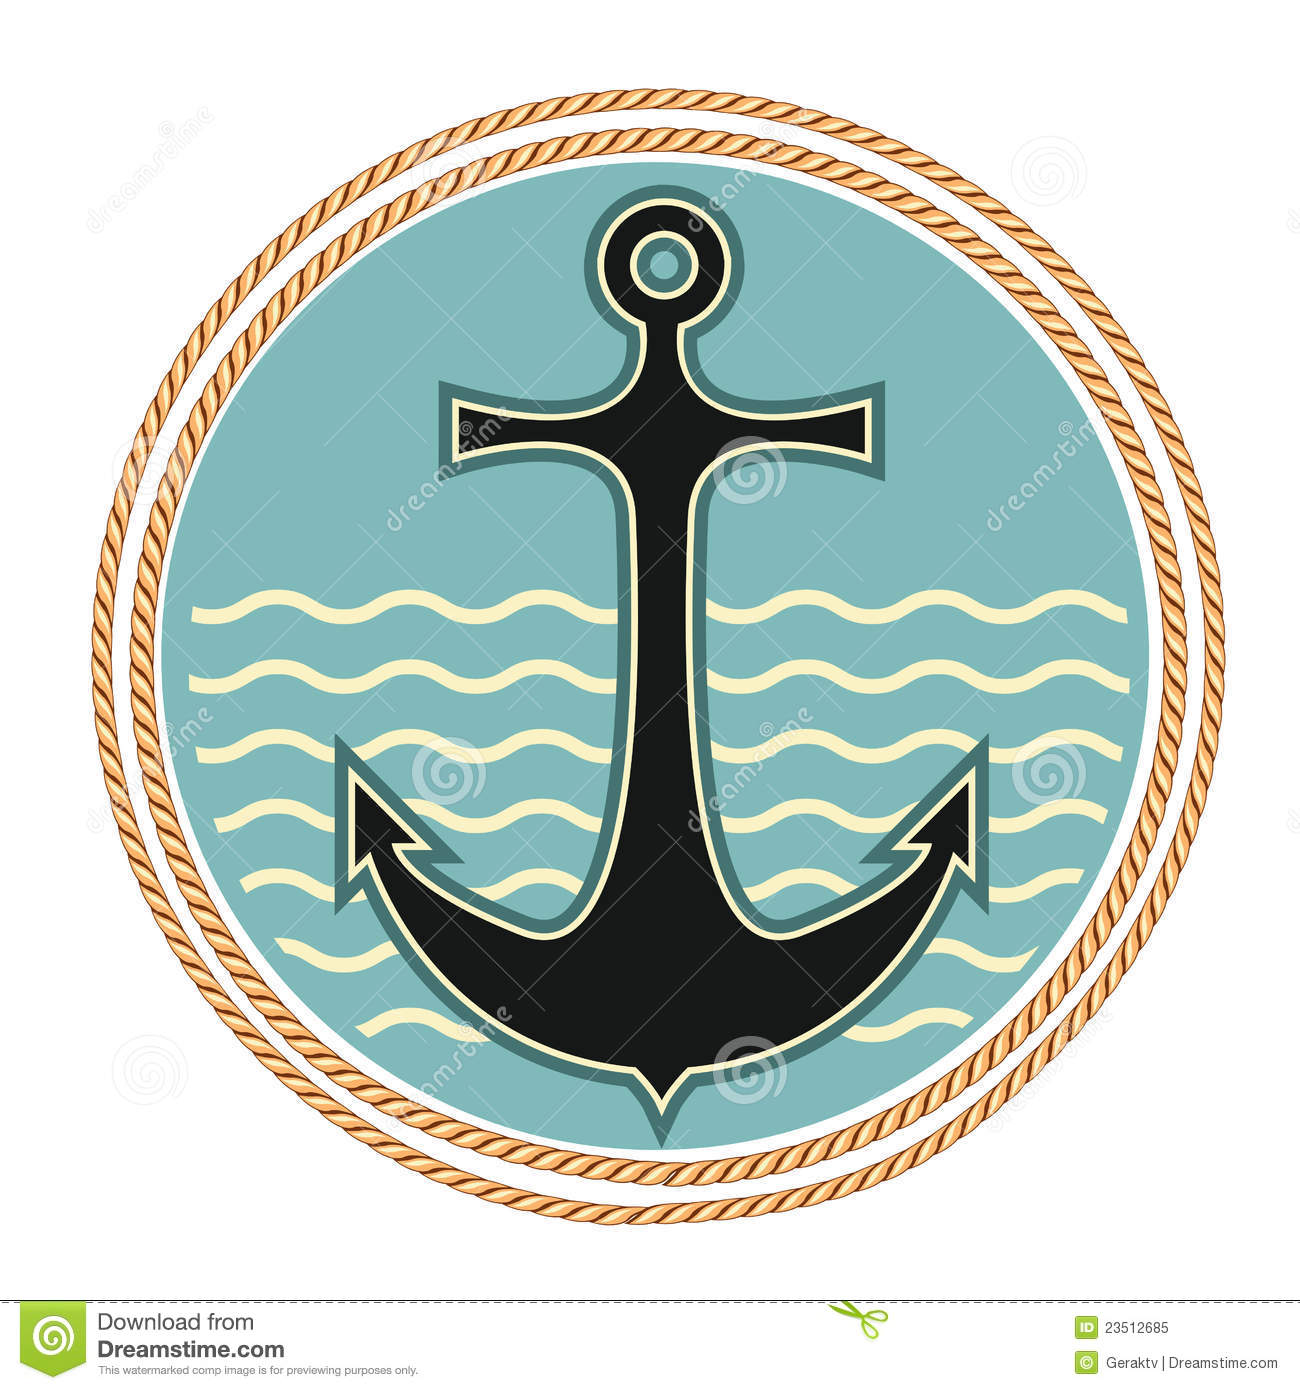 Anchor On White Images Stock Photos amp Vectors  Shutterstock